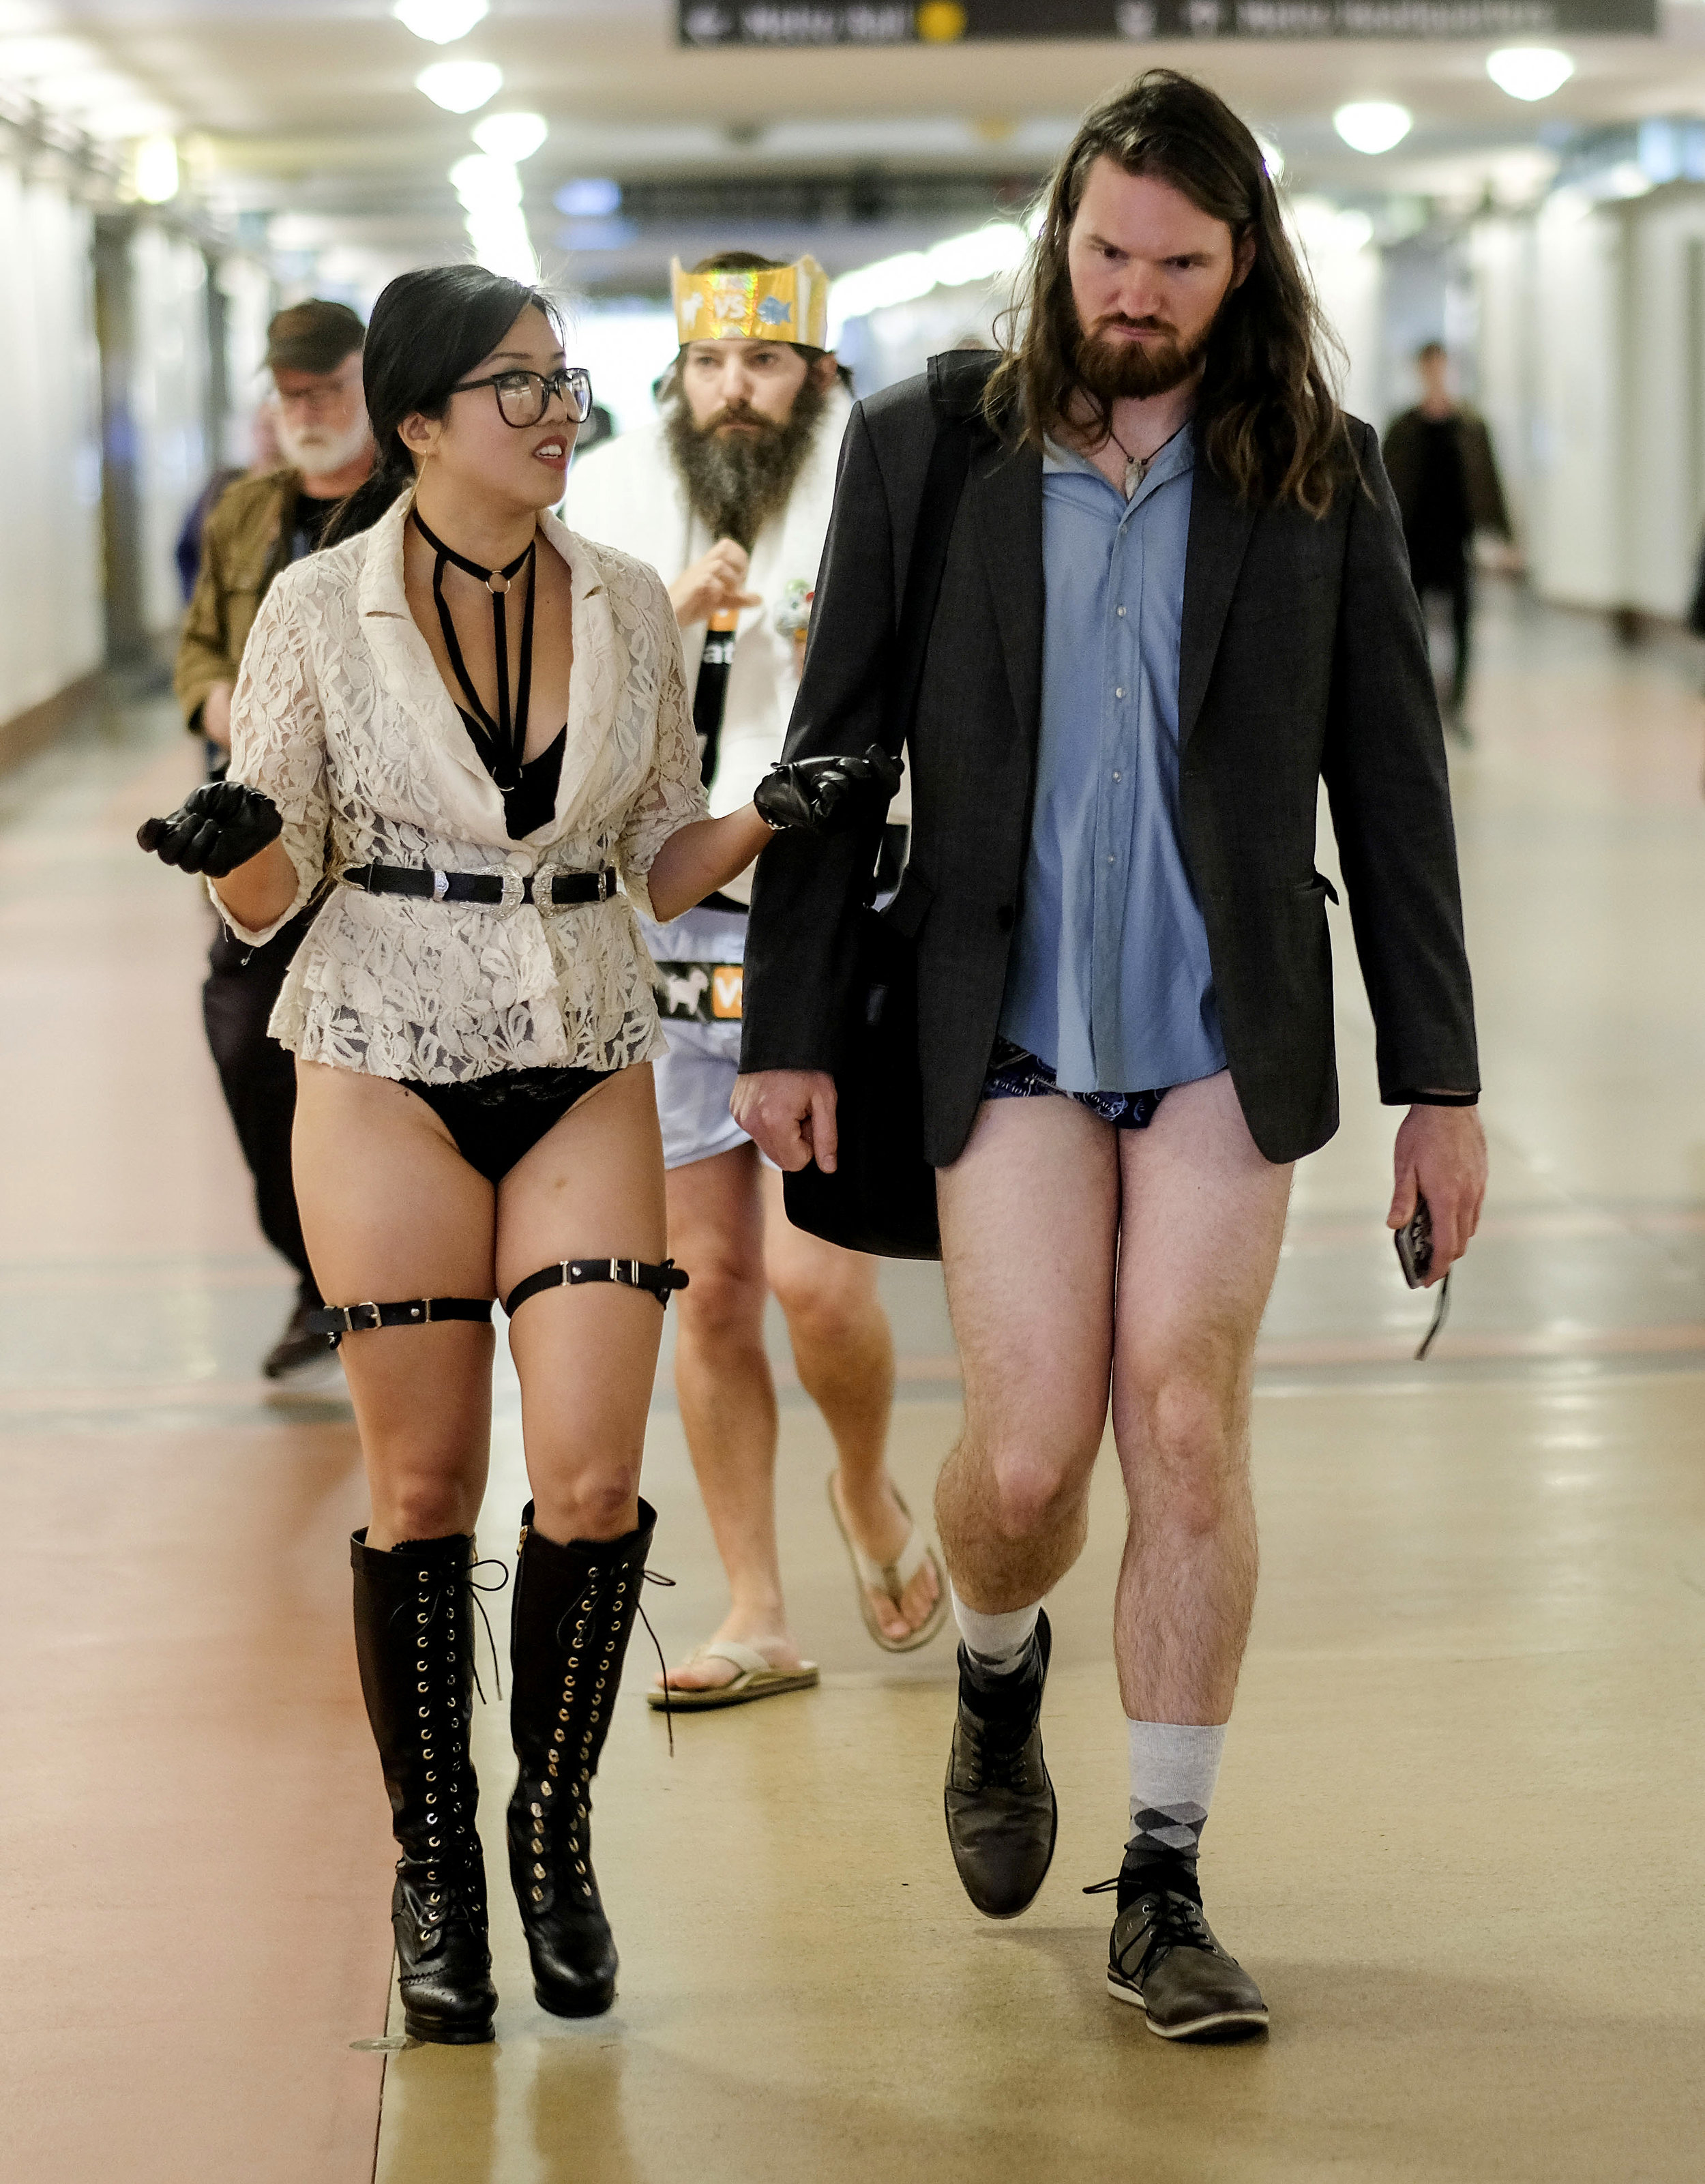 Participants in the 11th Annual No Pants Metro Ride at Union Station on January 13, 2019,  in Los Angeles.